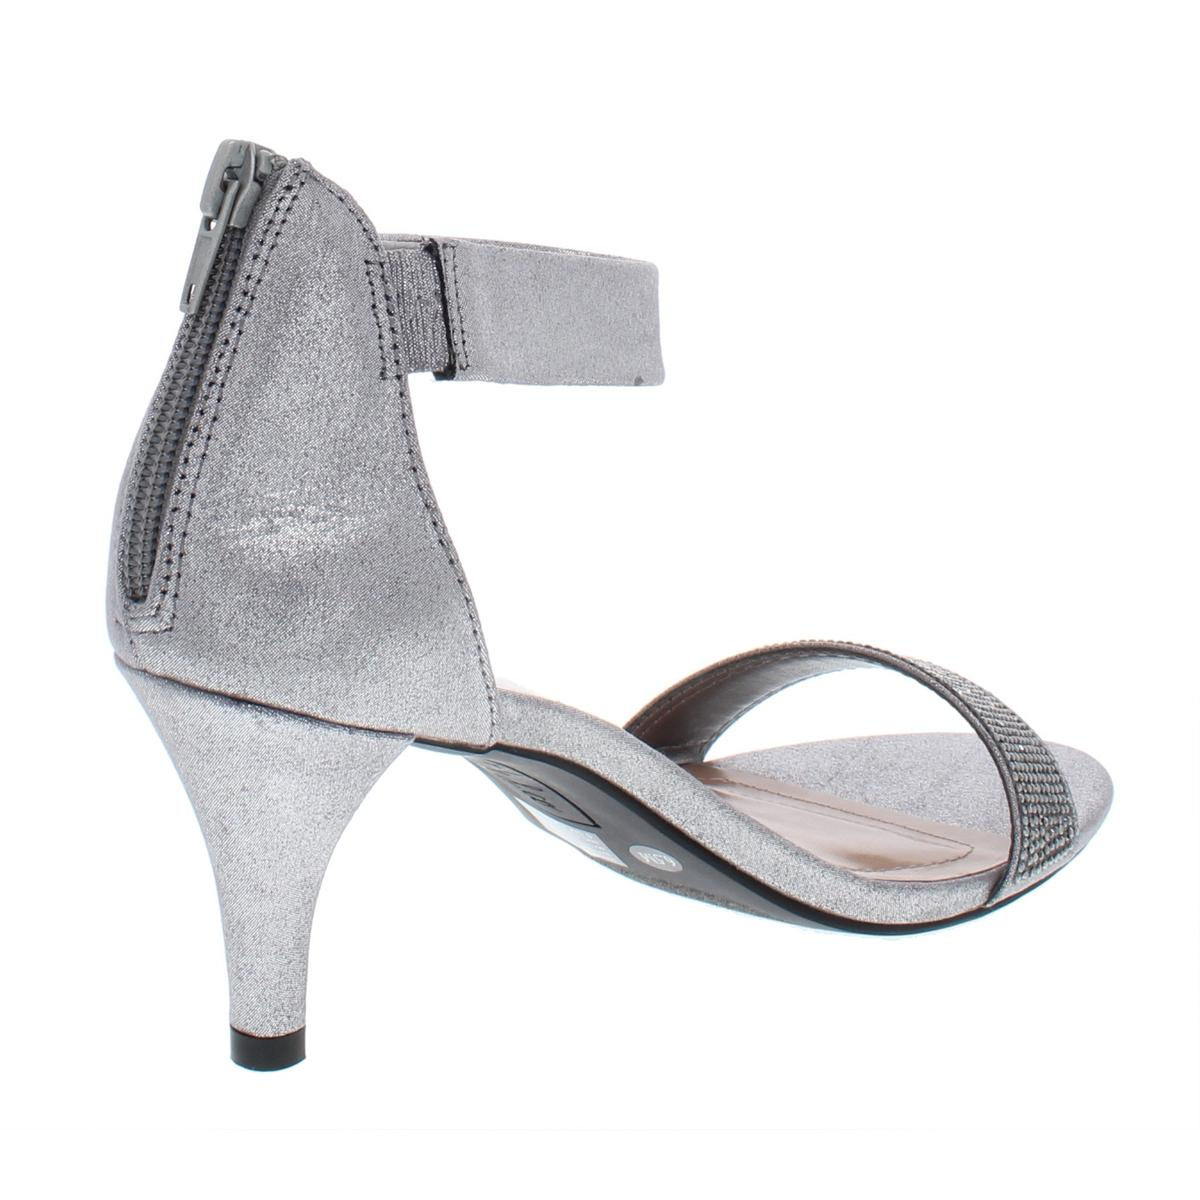 Style-amp-Co-Womens-Phillys-Padded-Insole-Open-Toe-Evening-Heels-Shoes-BHFO-5772 thumbnail 4